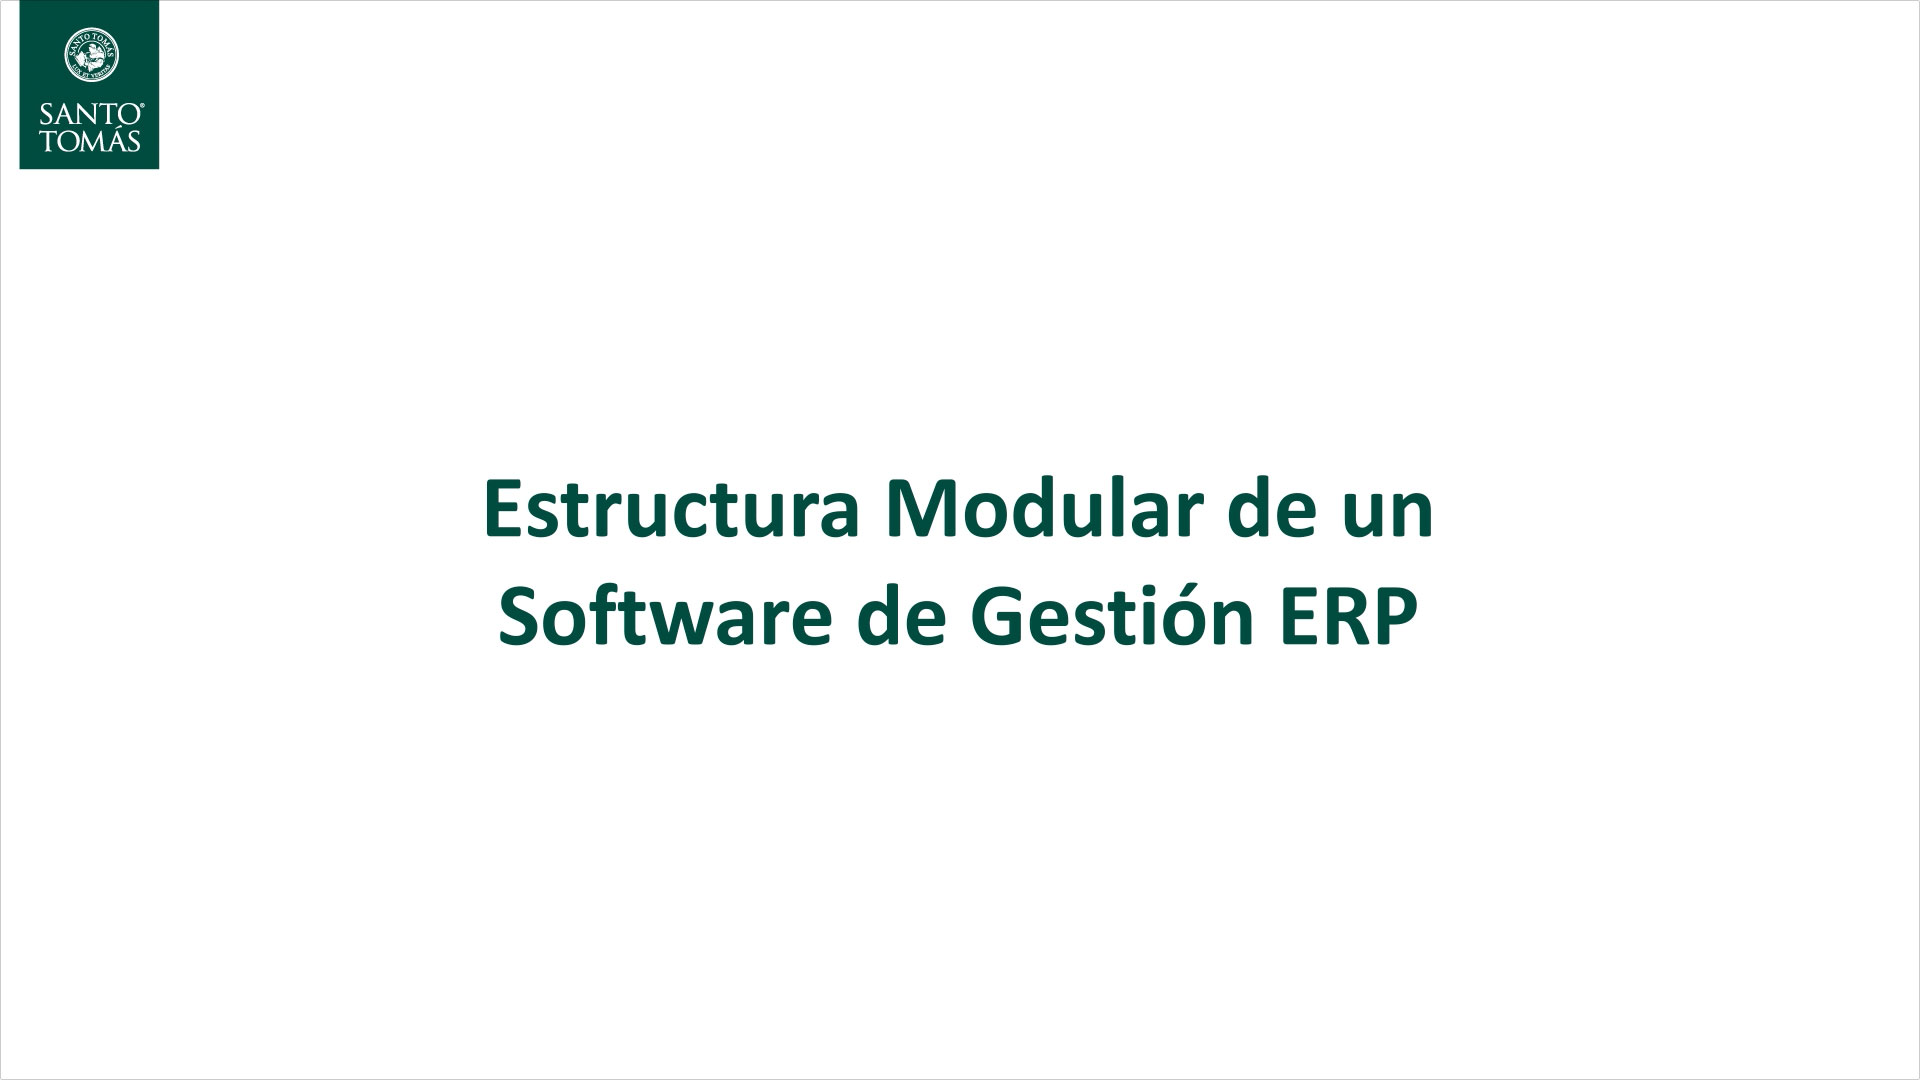 santo-tomas-erp1-captura-video-01